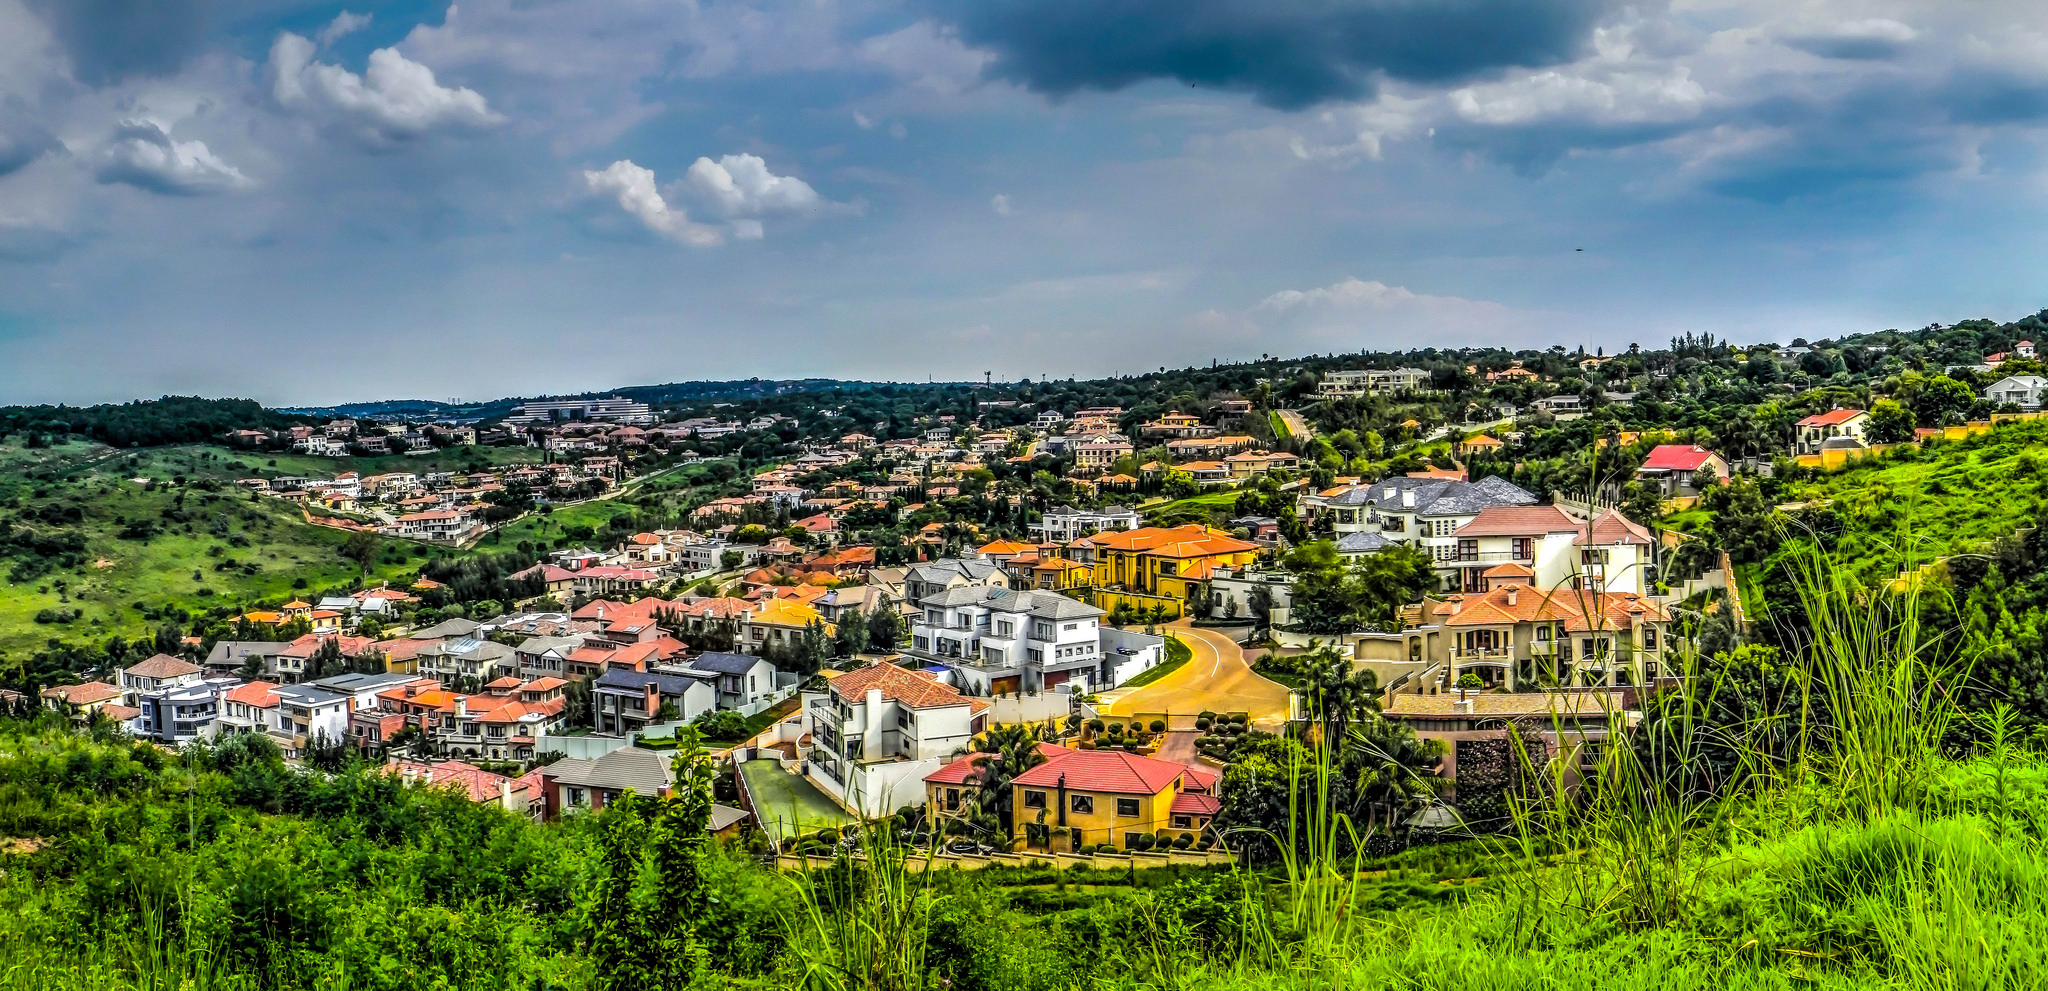 """Waterkloof Pretoria HDR"" by Paul Saad via Flickr Creative Commons"